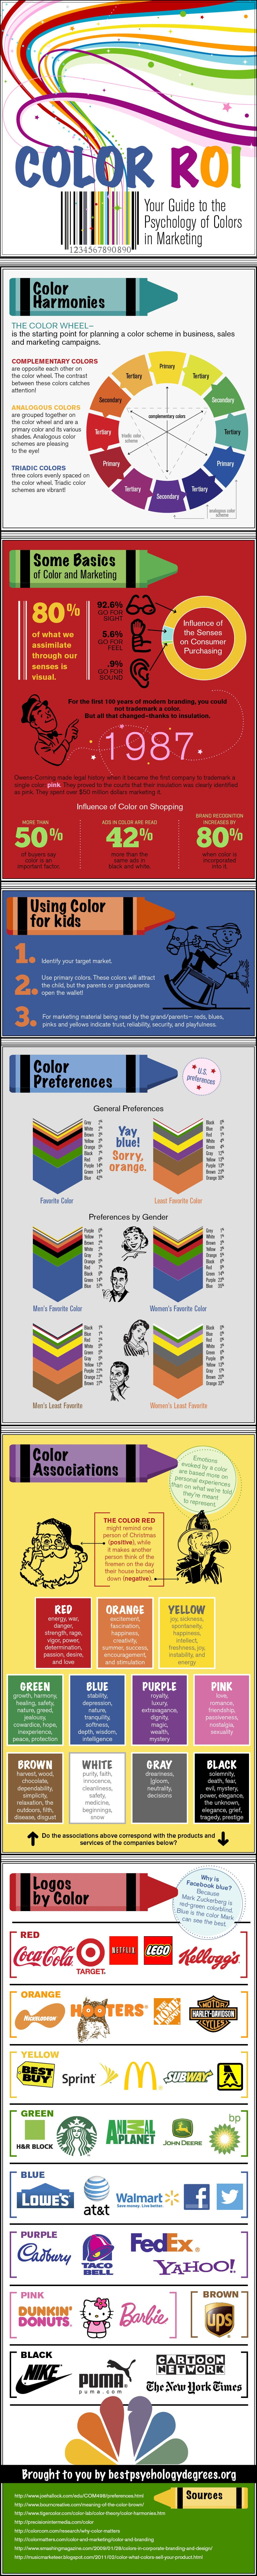 Bedroom Color Psychology ~ dact.us